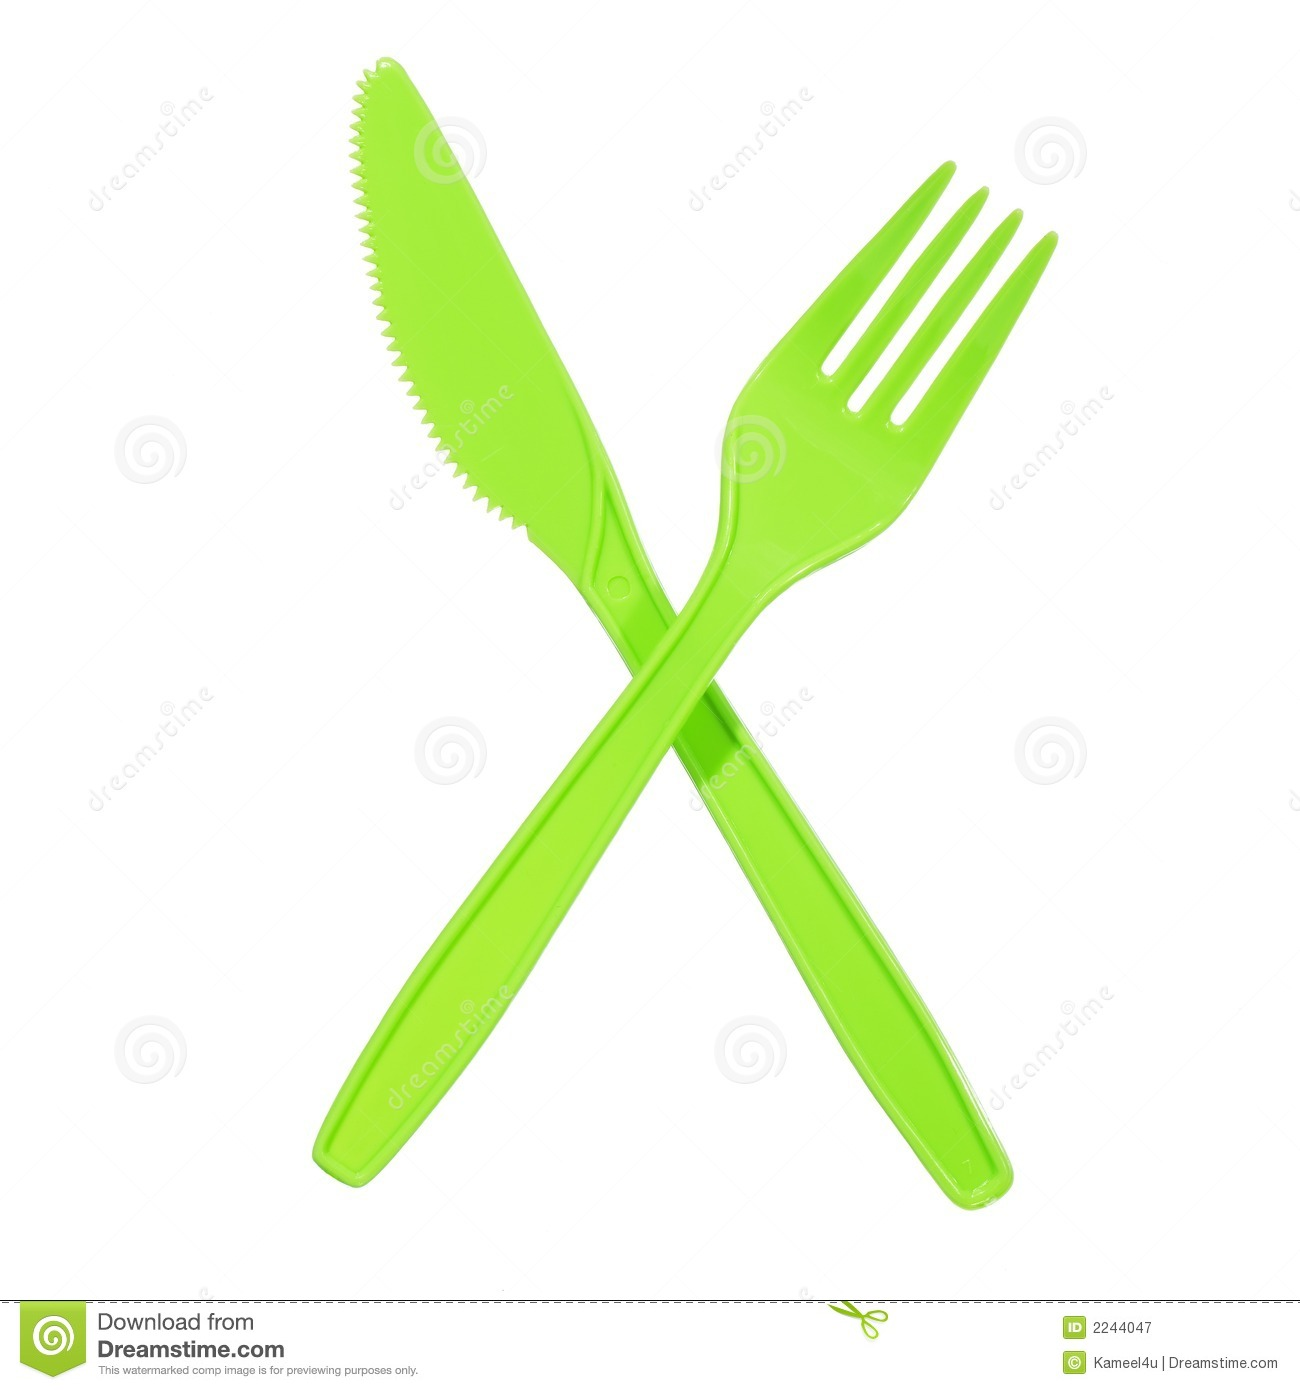 Vibrant Green Fork And Knife Royalty Free Stock